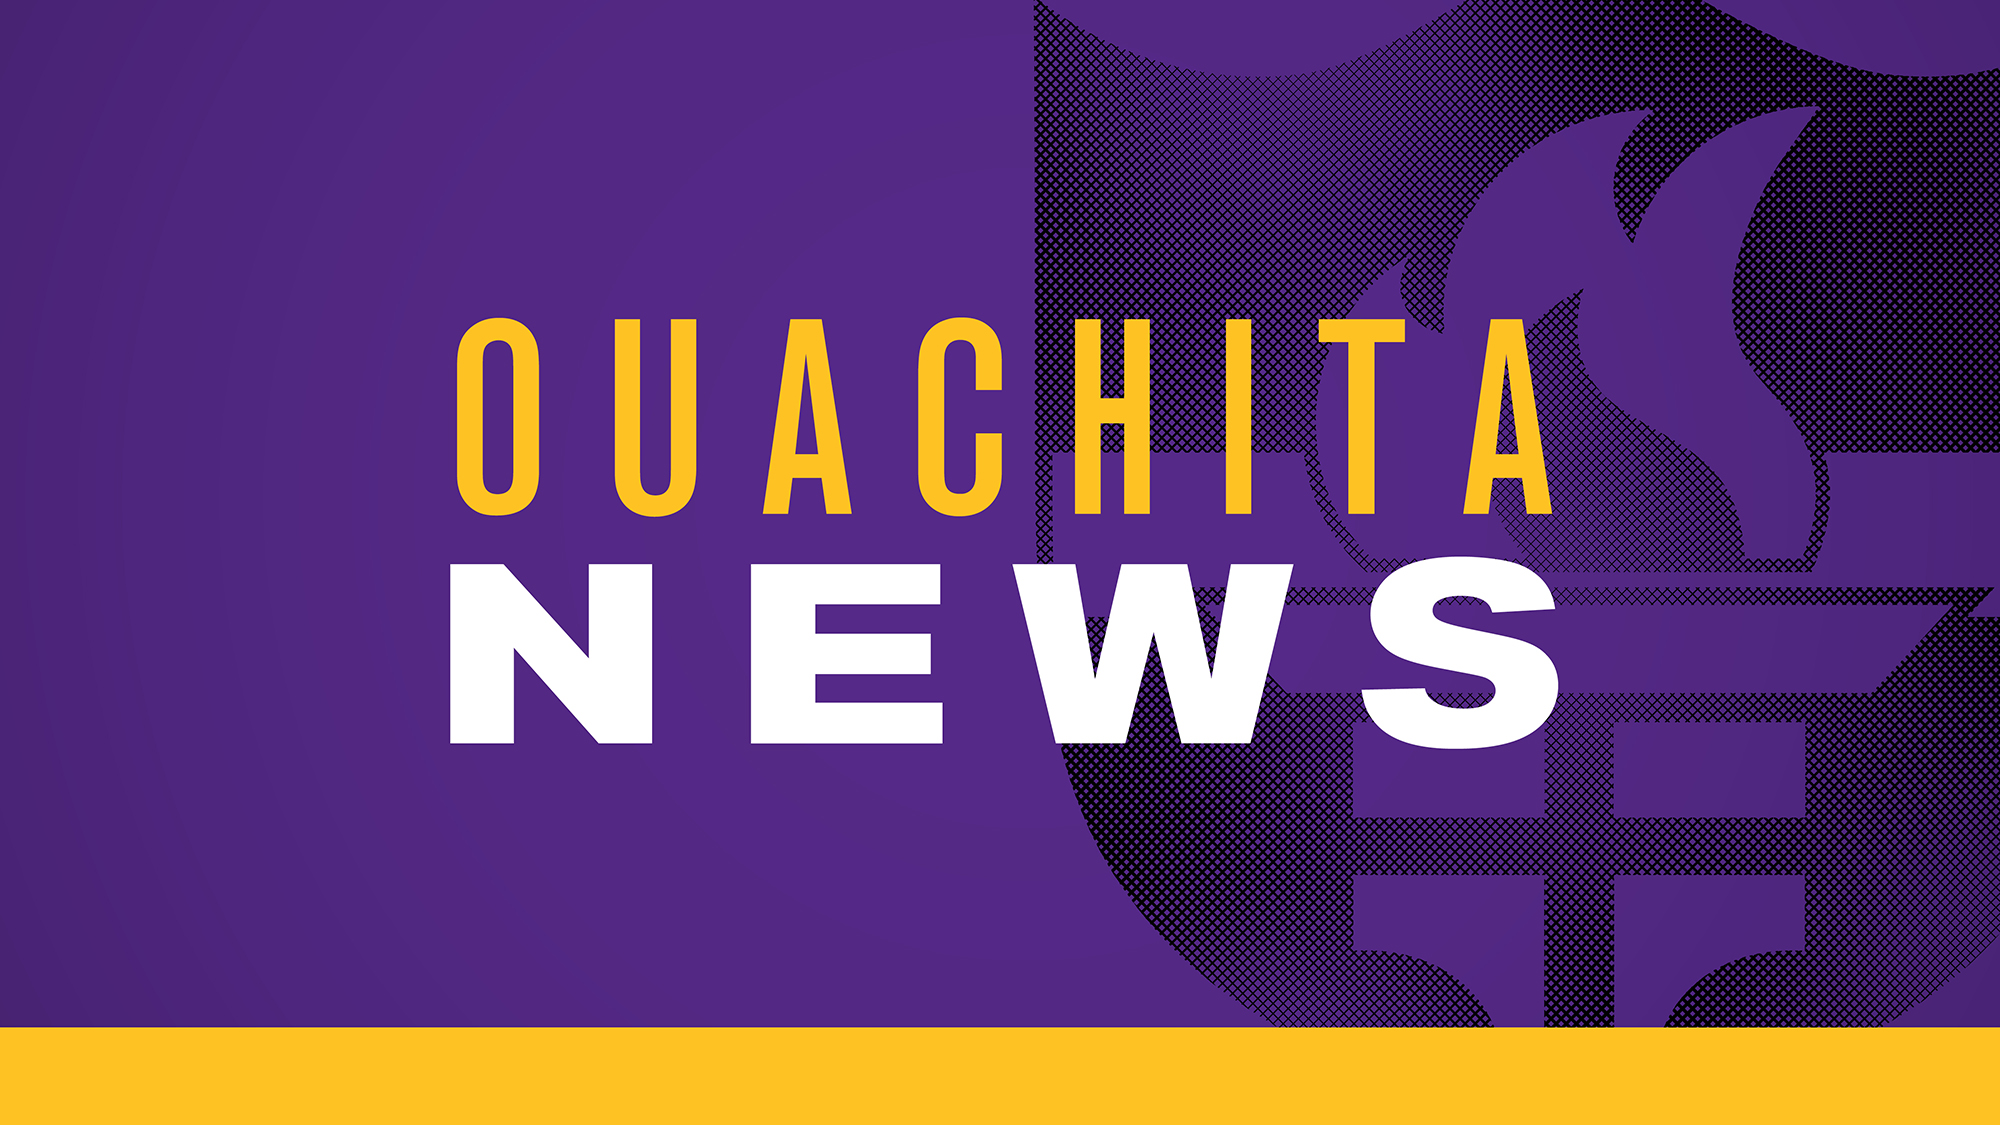 Ouachita News graphic